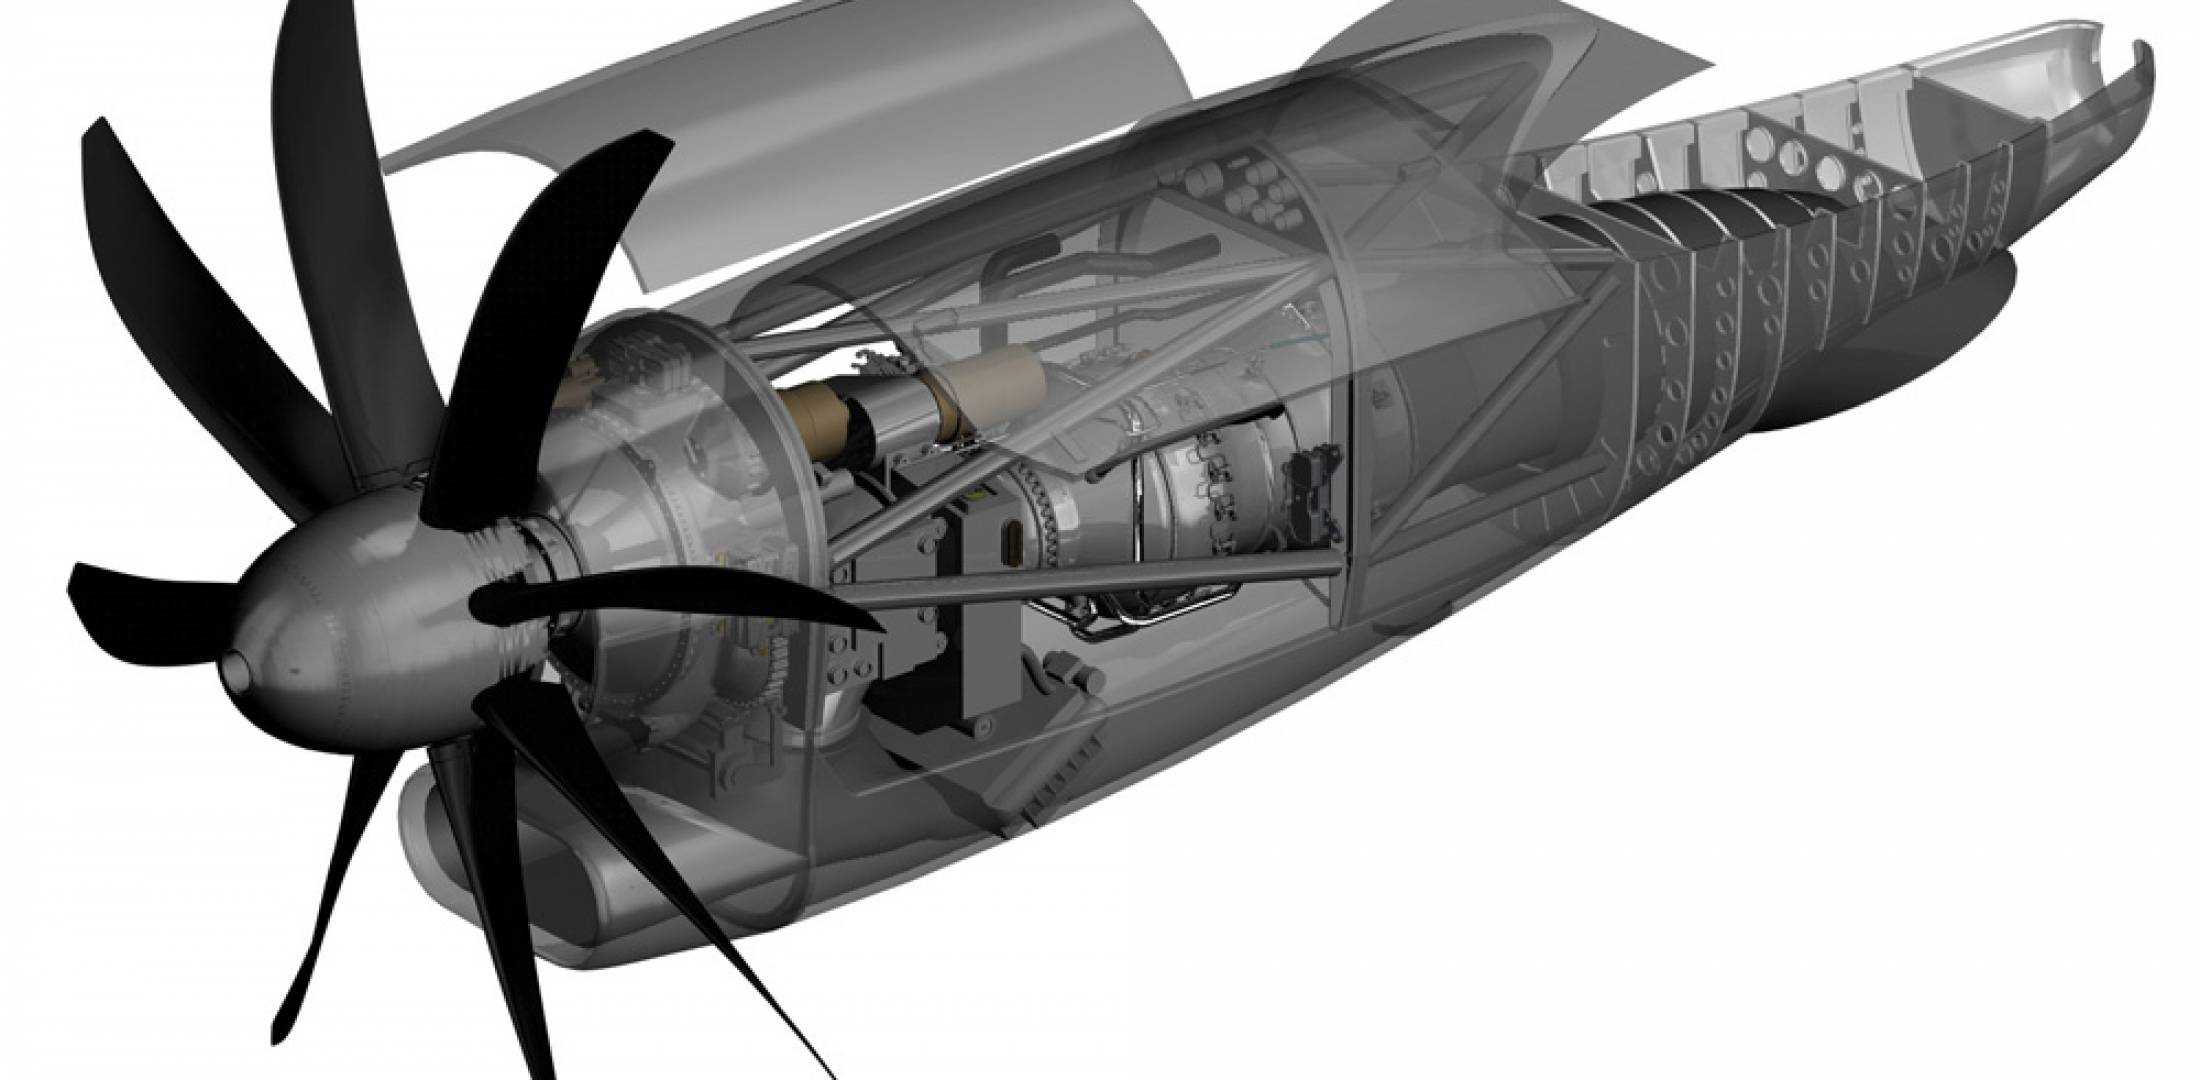 Pratt & Whitney Canada is continuing with early development work for its planned New Generation Regional Turboprop.